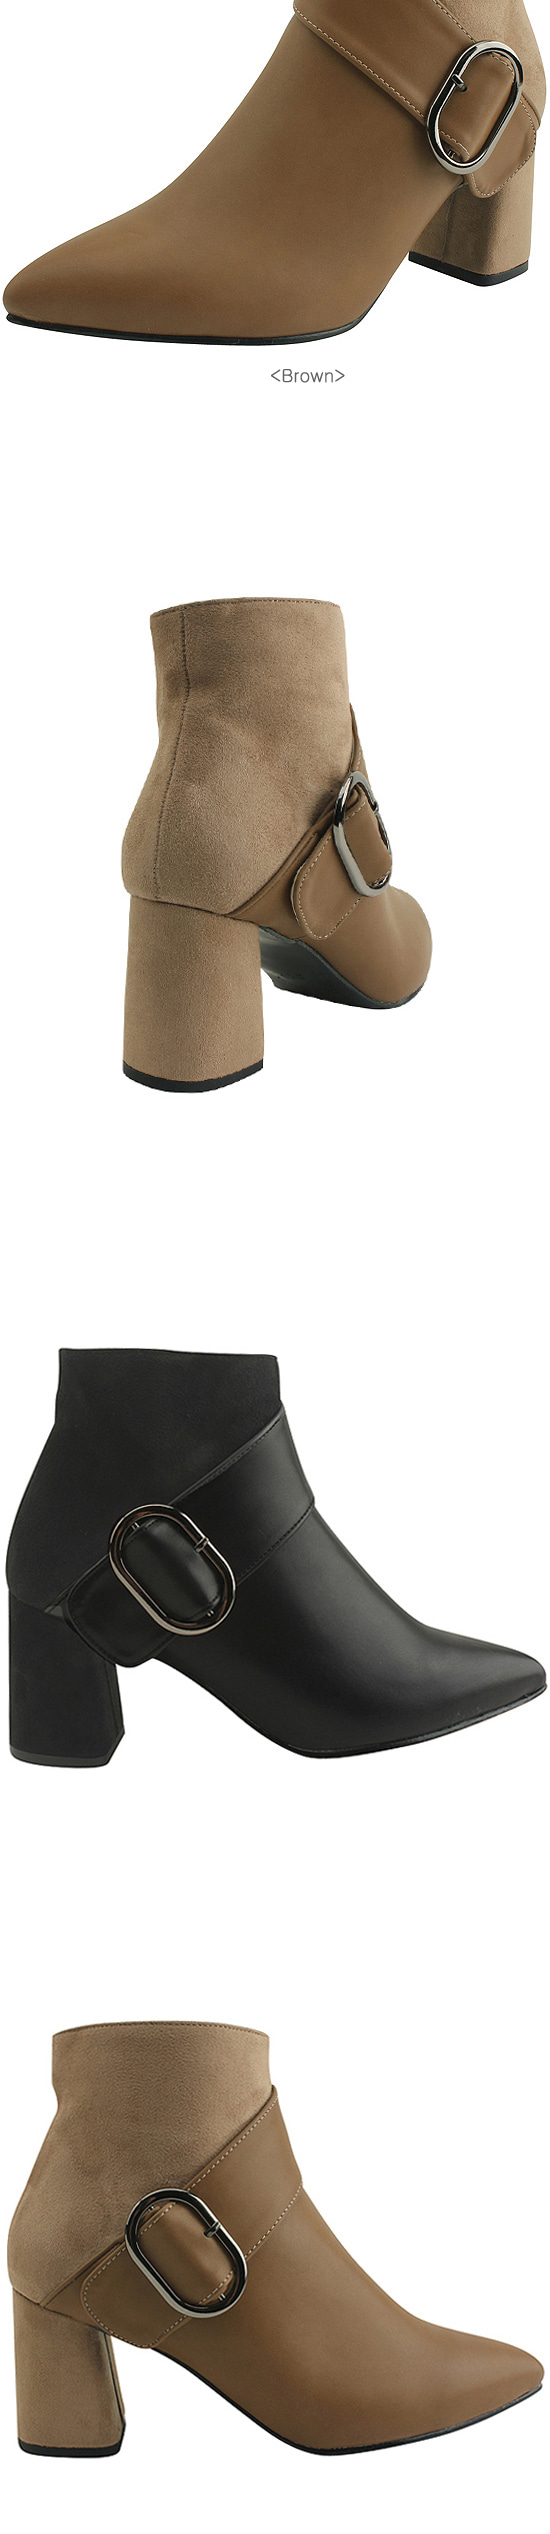 Pointed Nose Two-tone High Heel Ankle Boots Brown